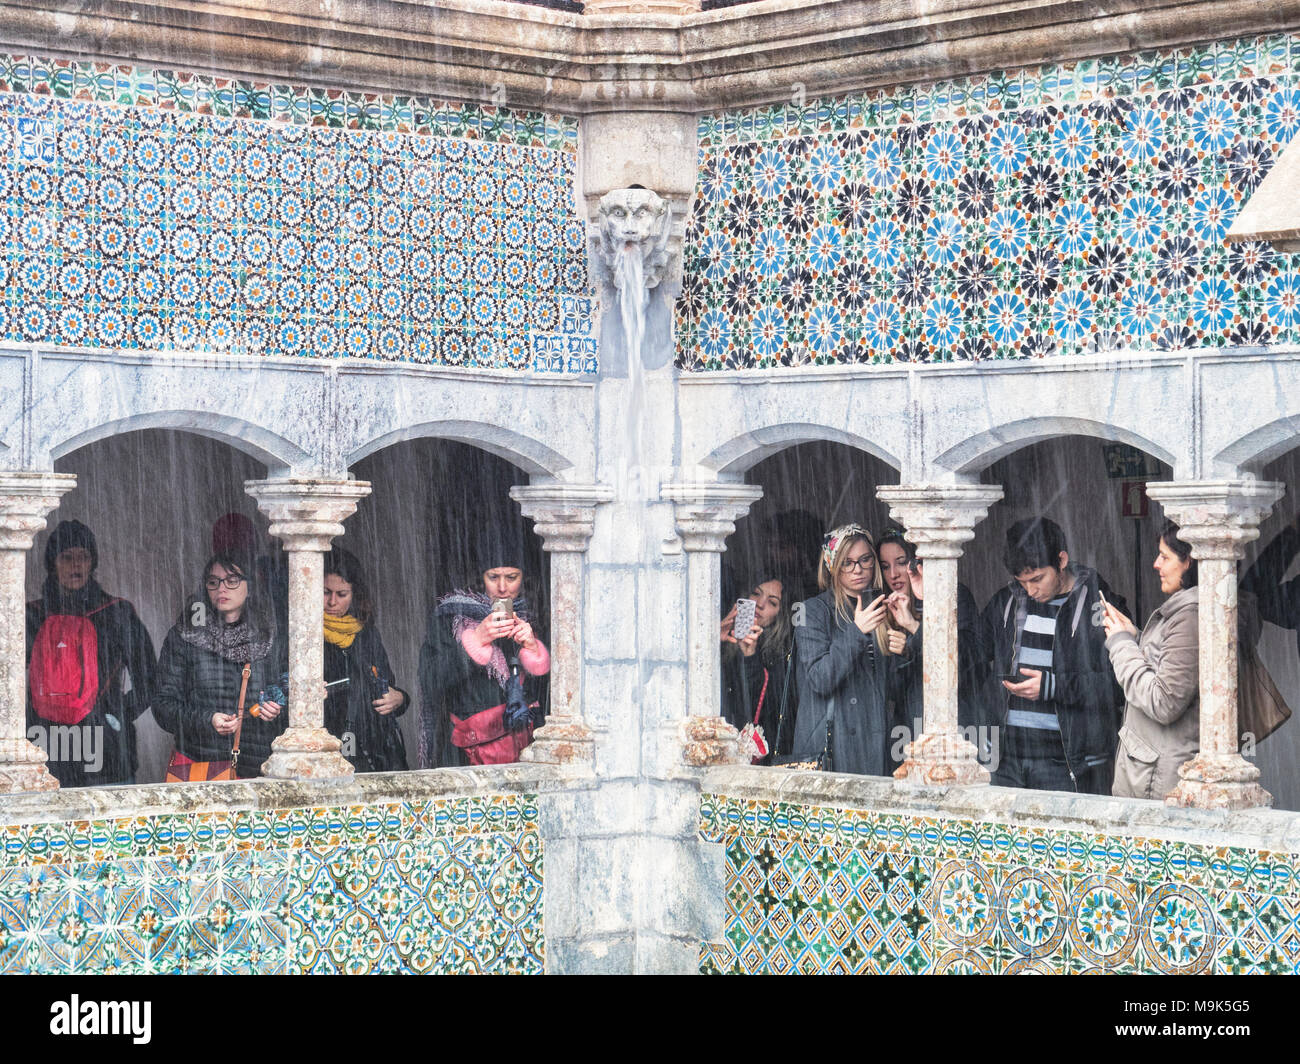 5 March 2018: Sintra, Portugal - Tourists with camera phones under a colonnade at Pena Palace, making the most of a very wet day. - Stock Image